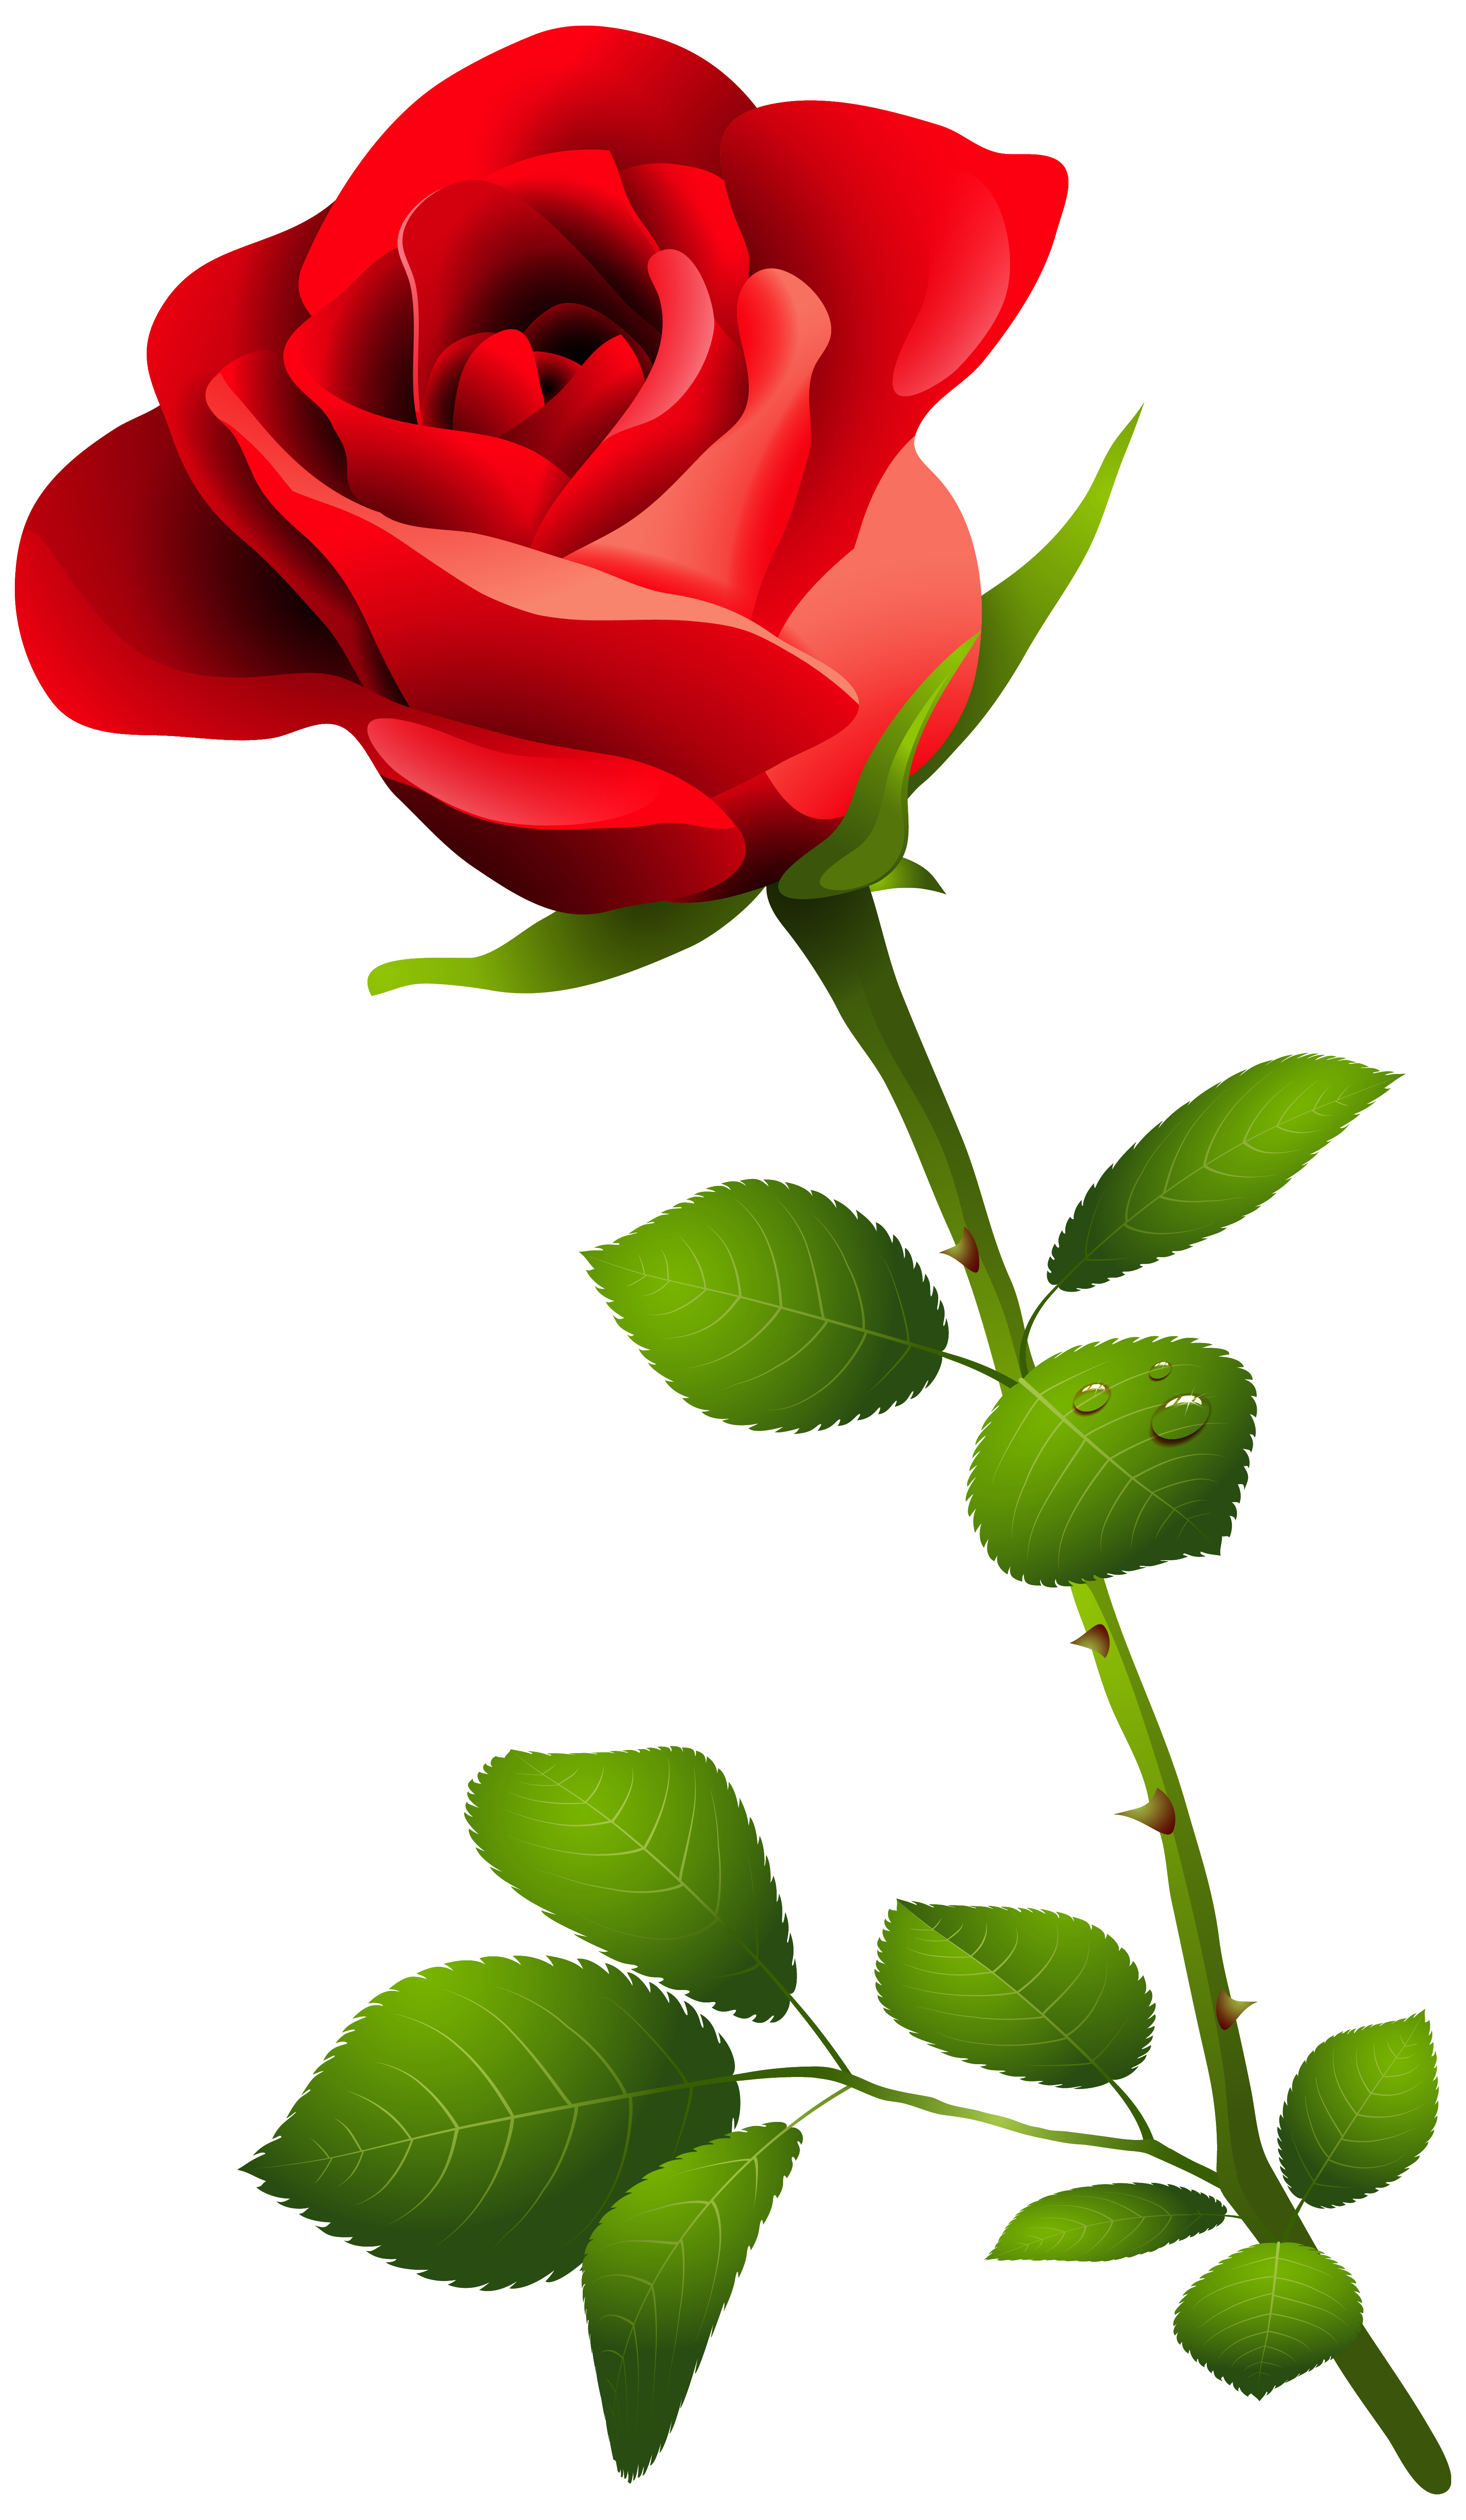 3658x6286 Edit And Free Download Red Rose With Stem Png Clipart Image